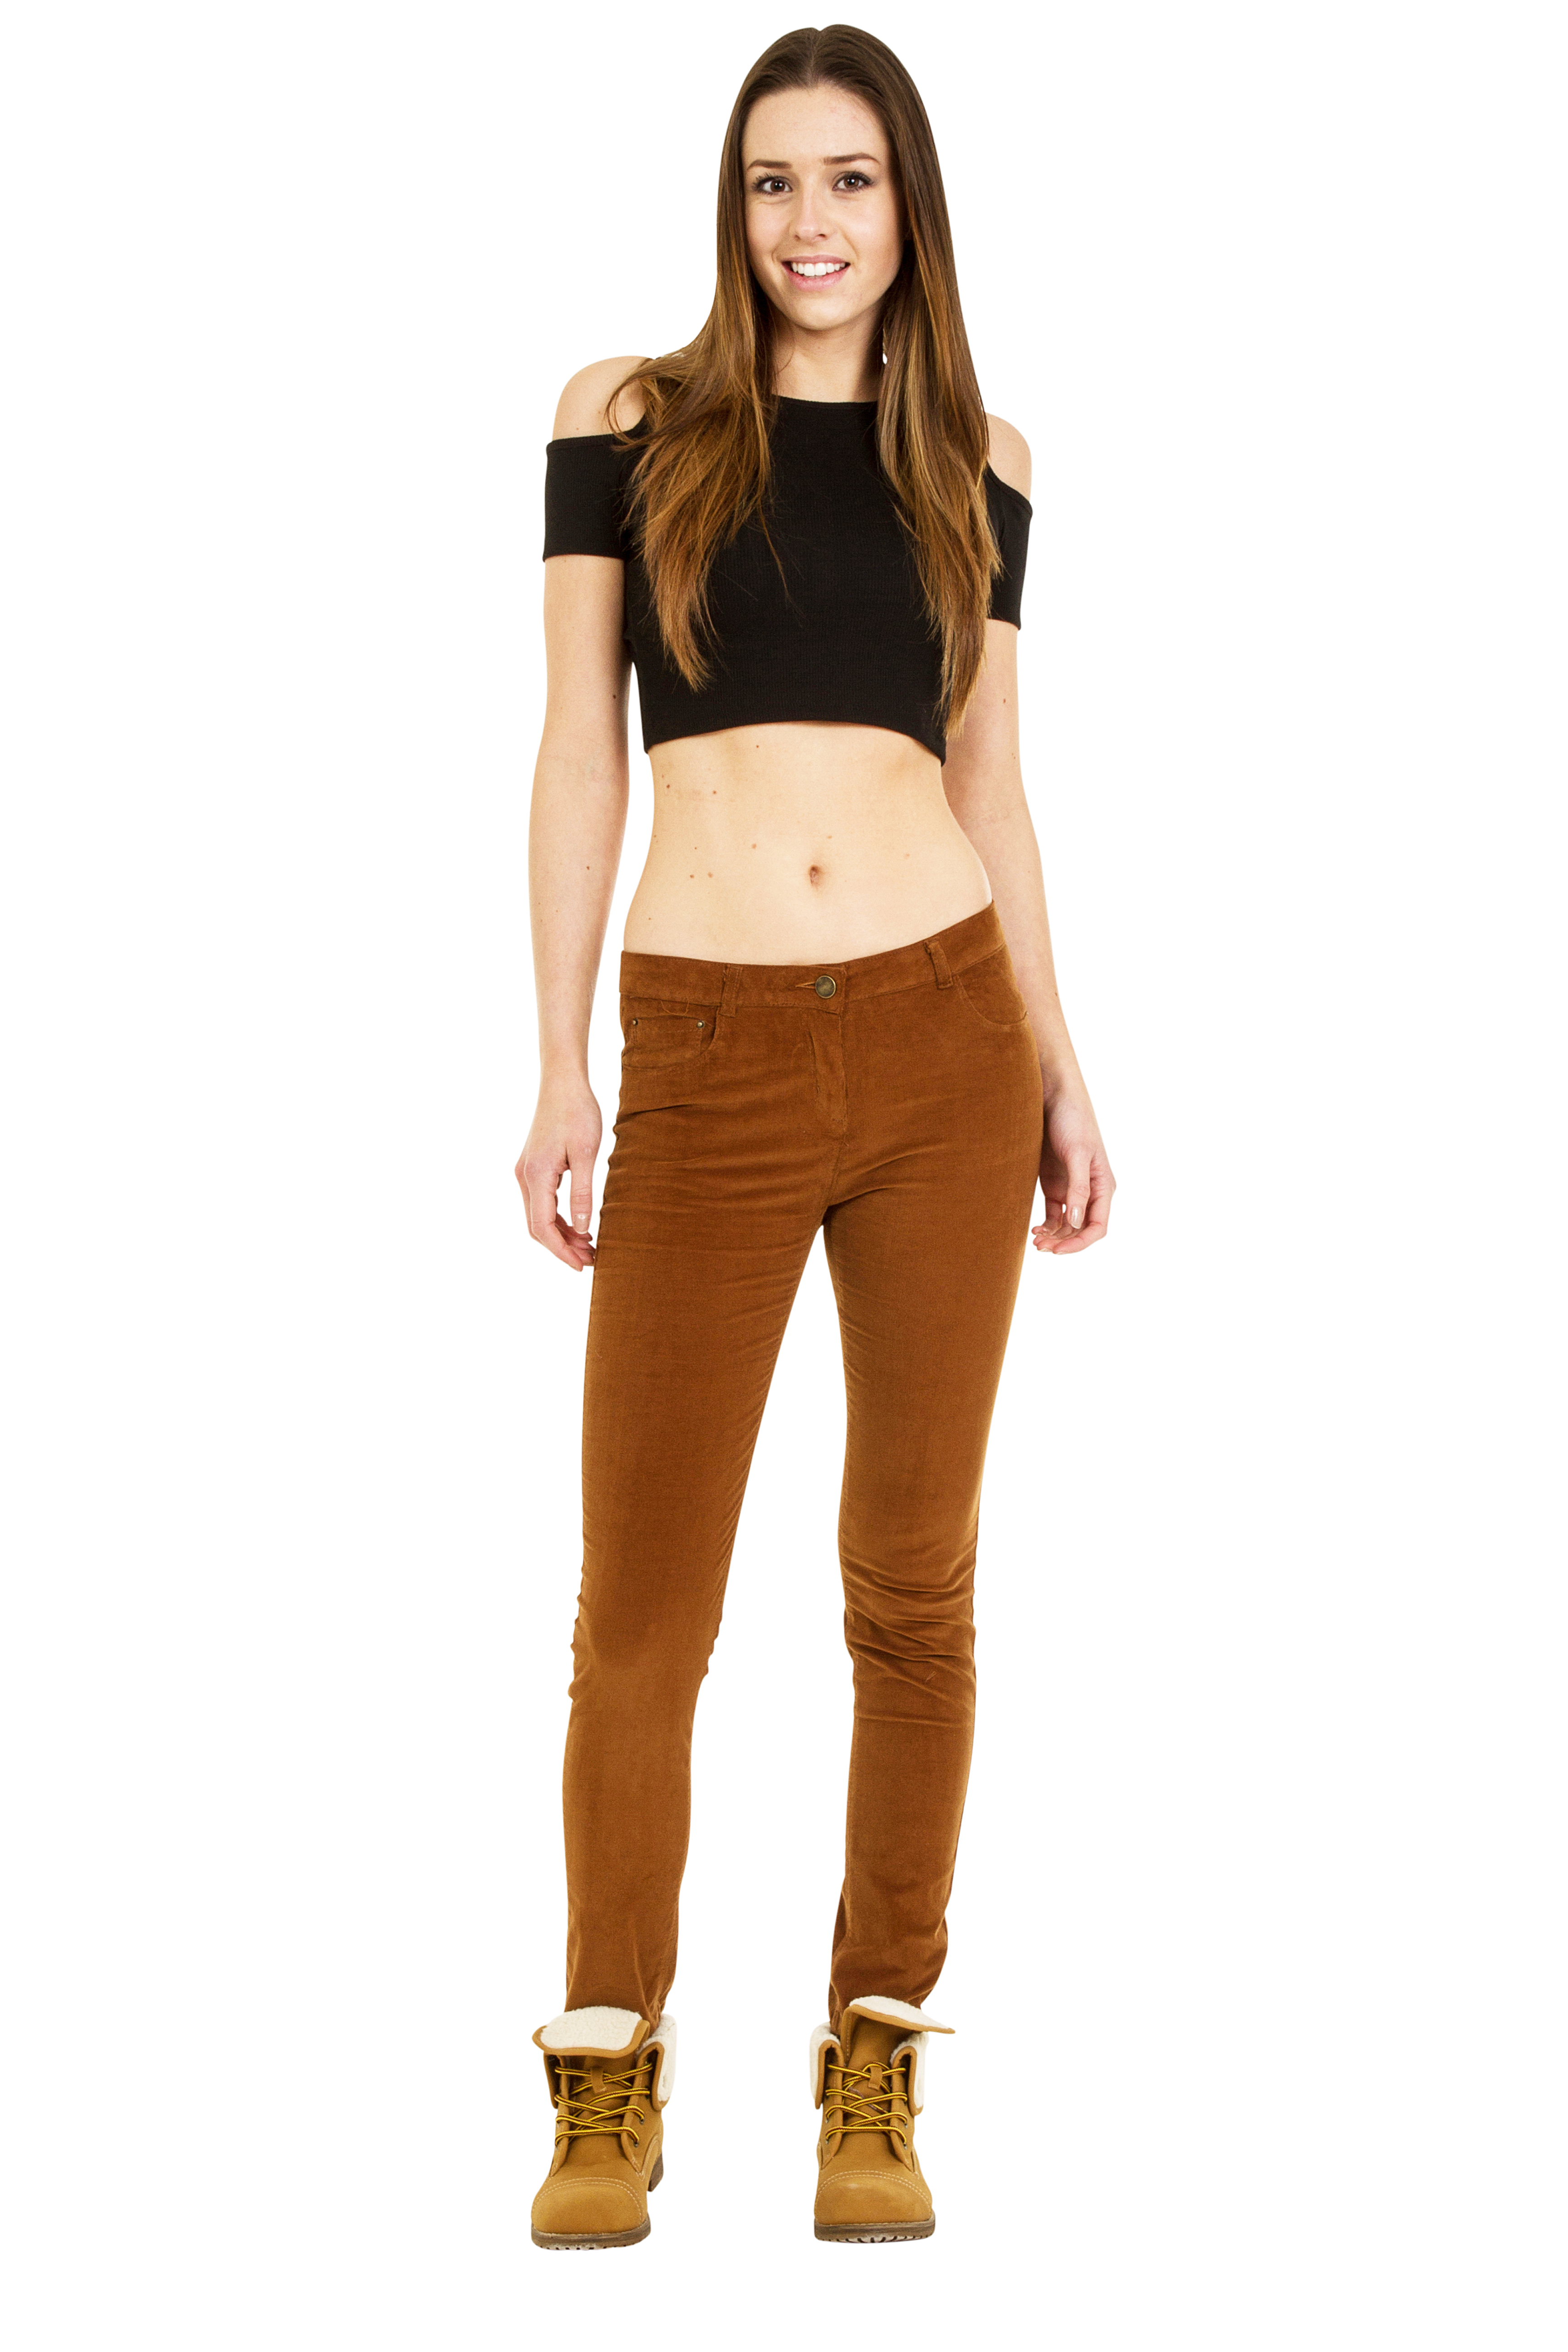 Browse Land's End to find women's corduroy pants & corduroy jeans. Corduroys are a beloved cold-weather staple—we have the most variety in women's corduroys. skip to content skip to navigation skip to search. Women's Corduroy Pants {{resultHeading}} sign up. Get exclusive Offers and News.